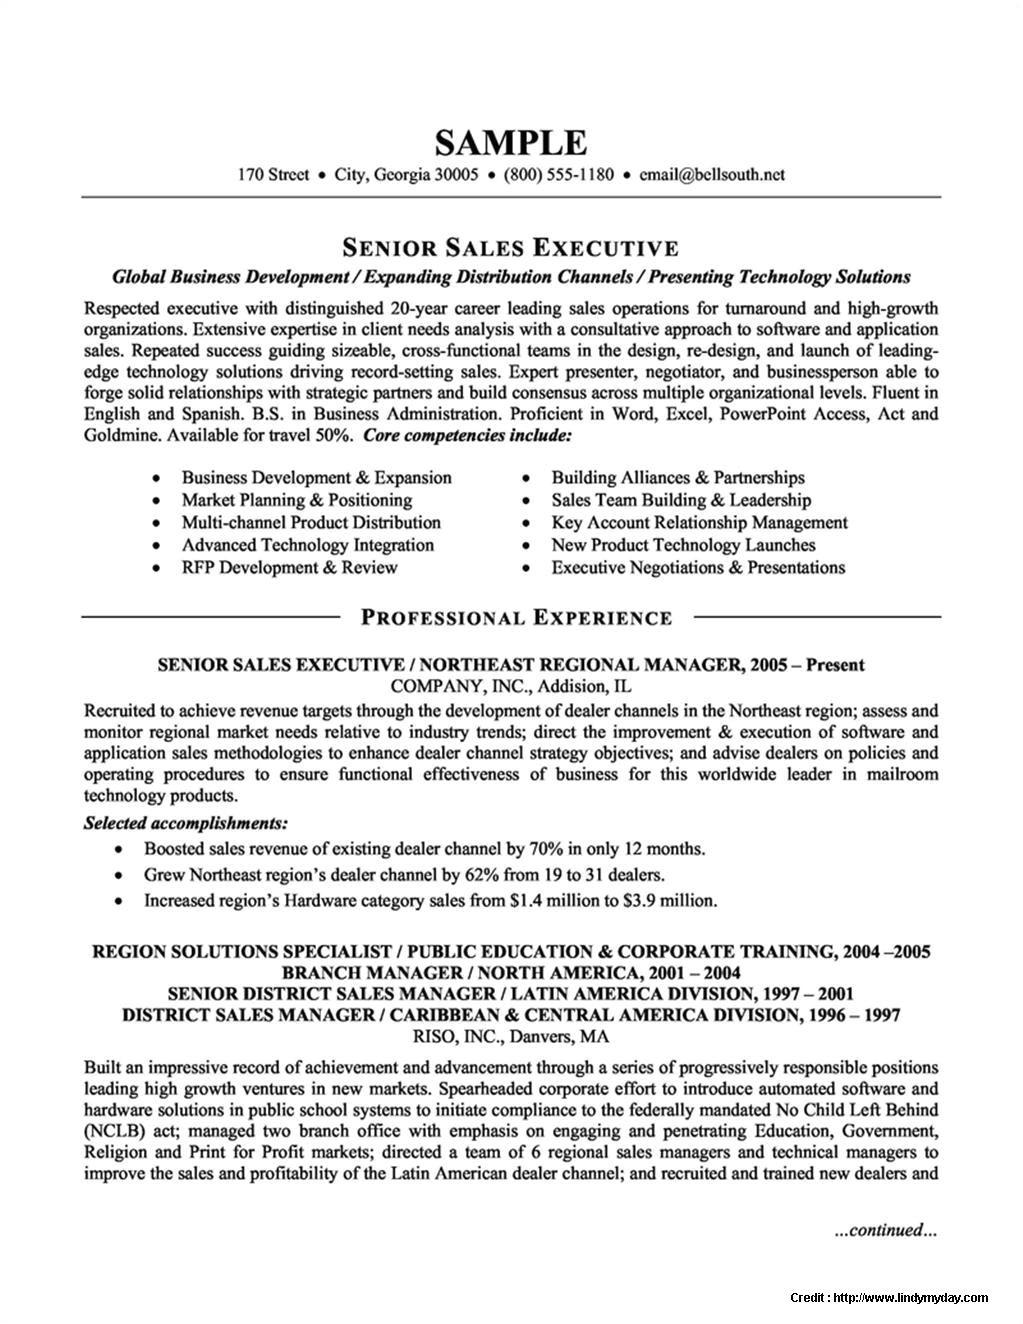 sample resume format for experienced sales executive